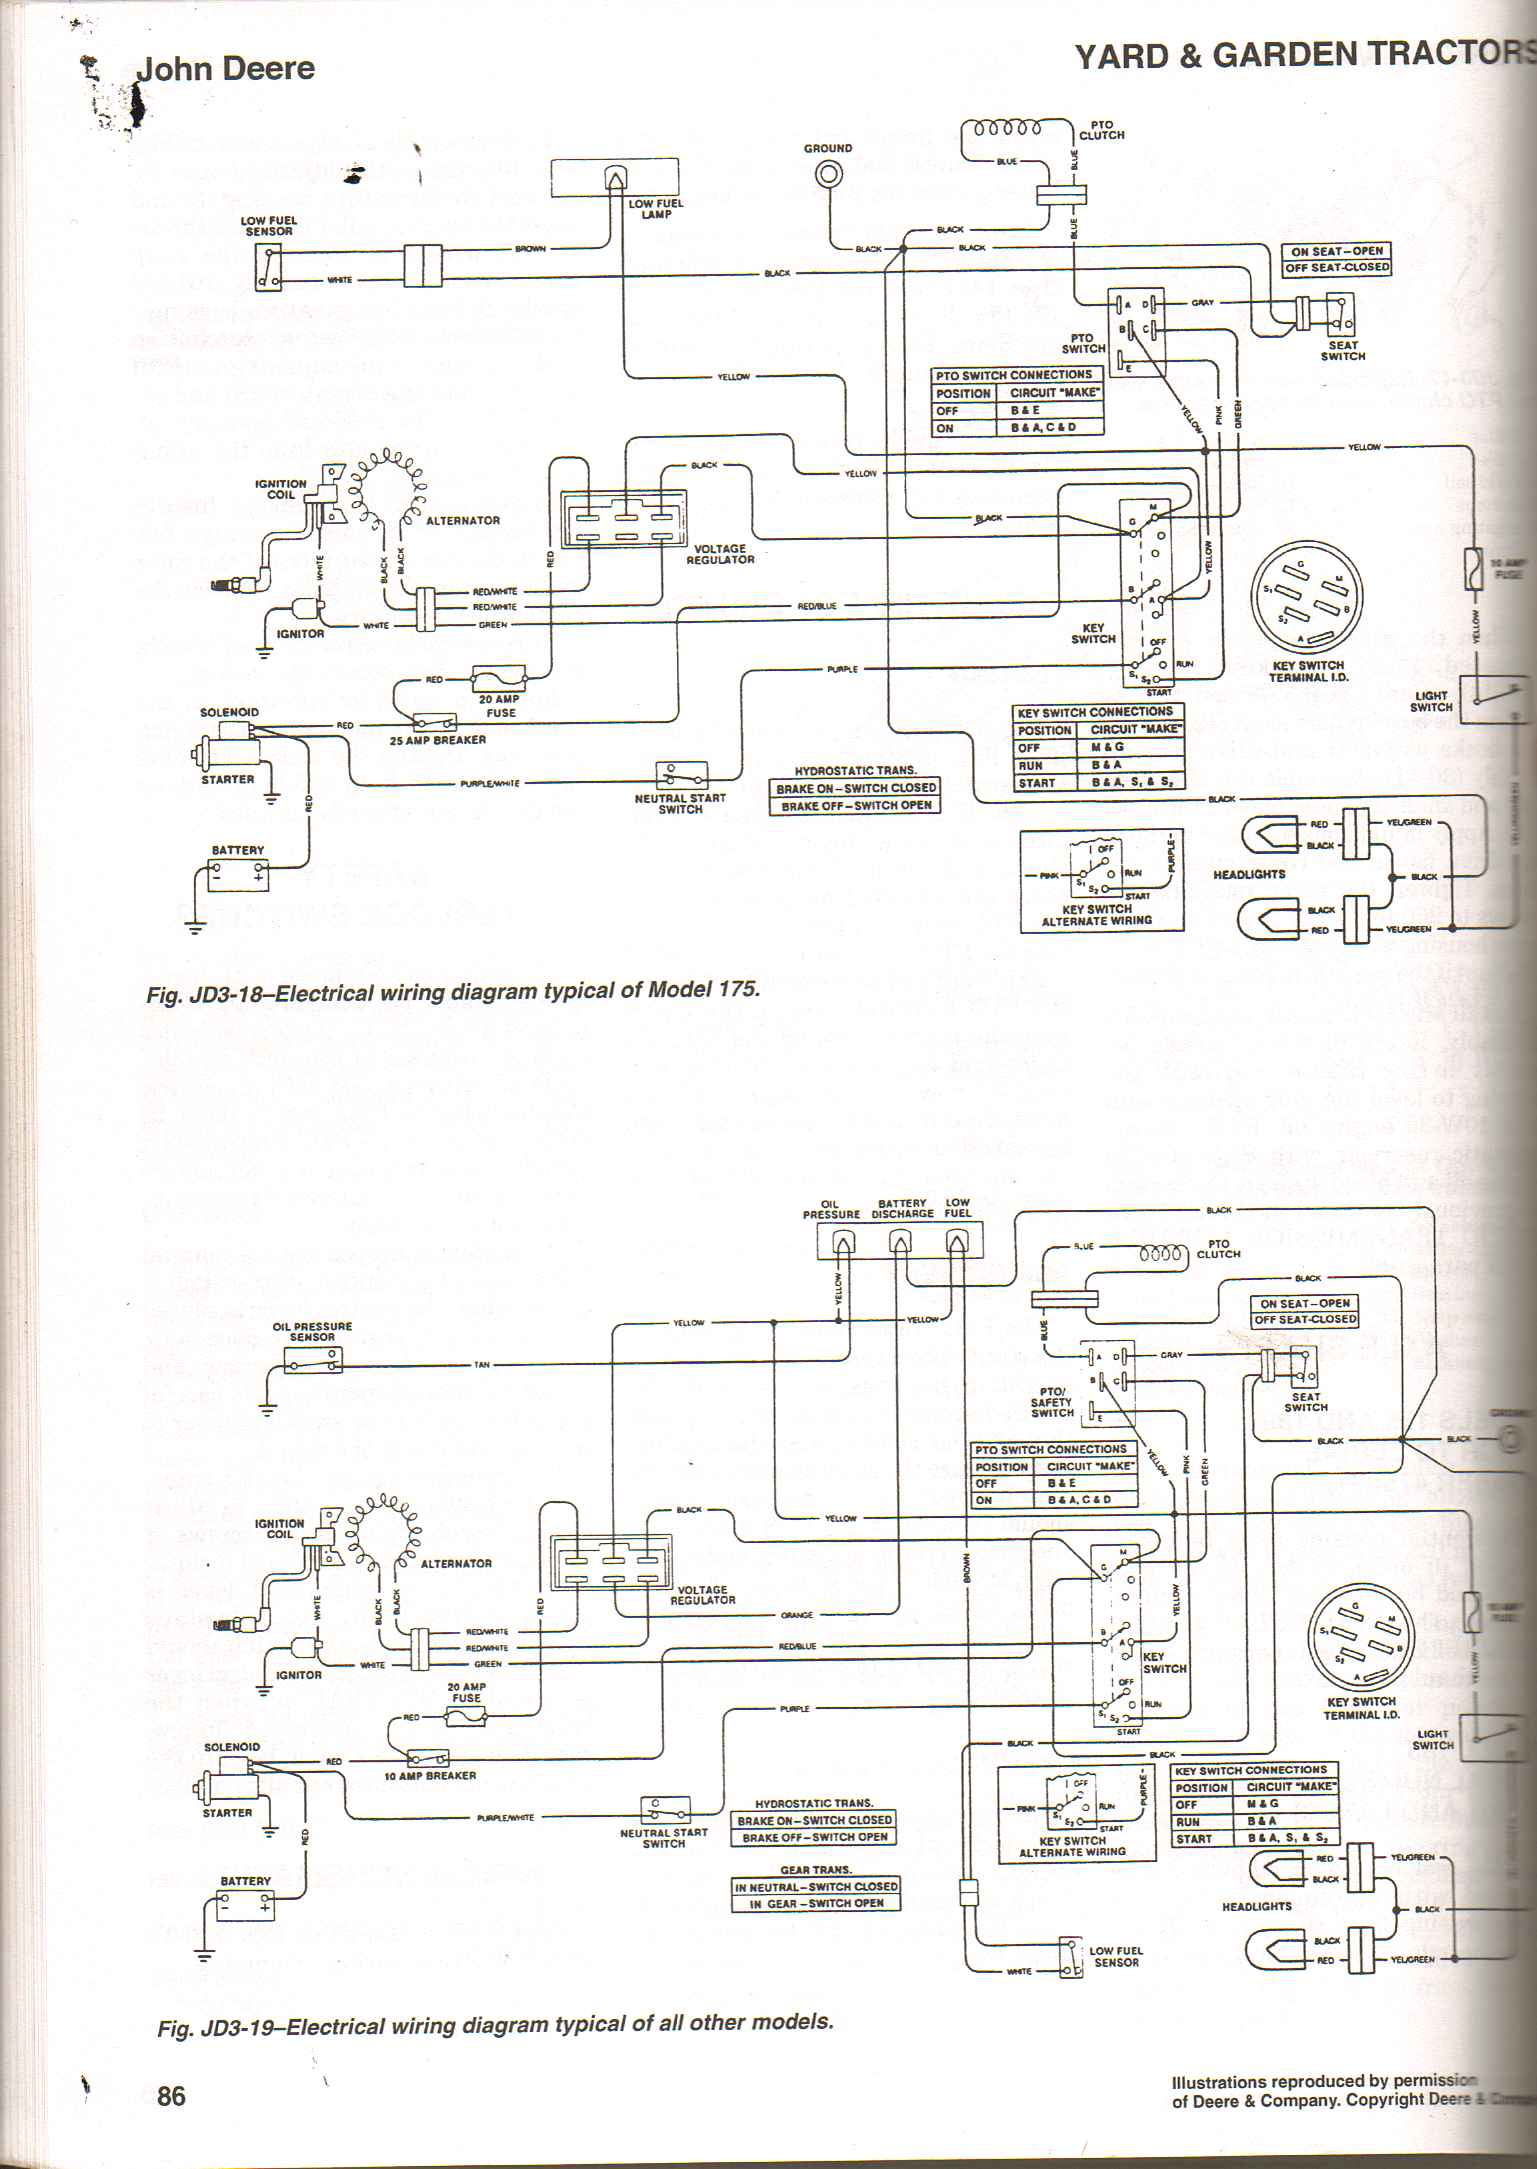 John Deere Mower Wiring Diagram on john deere wiring schematics